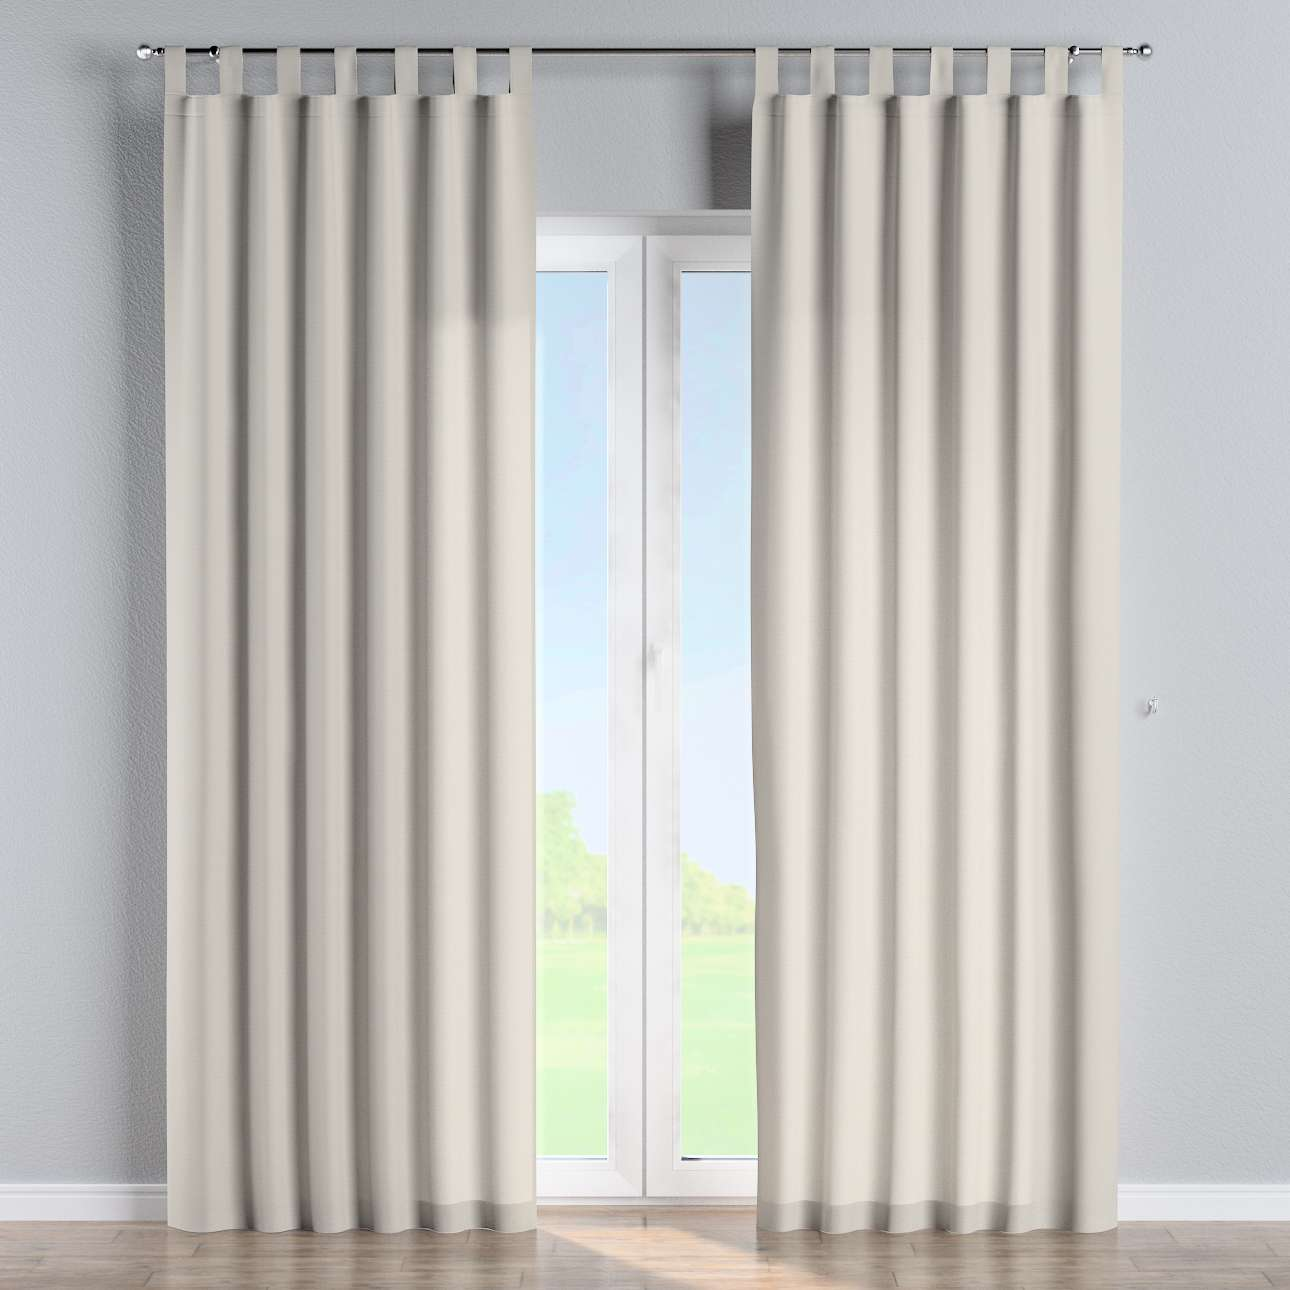 Tab top curtains in collection Panama Cotton, fabric: 702-31